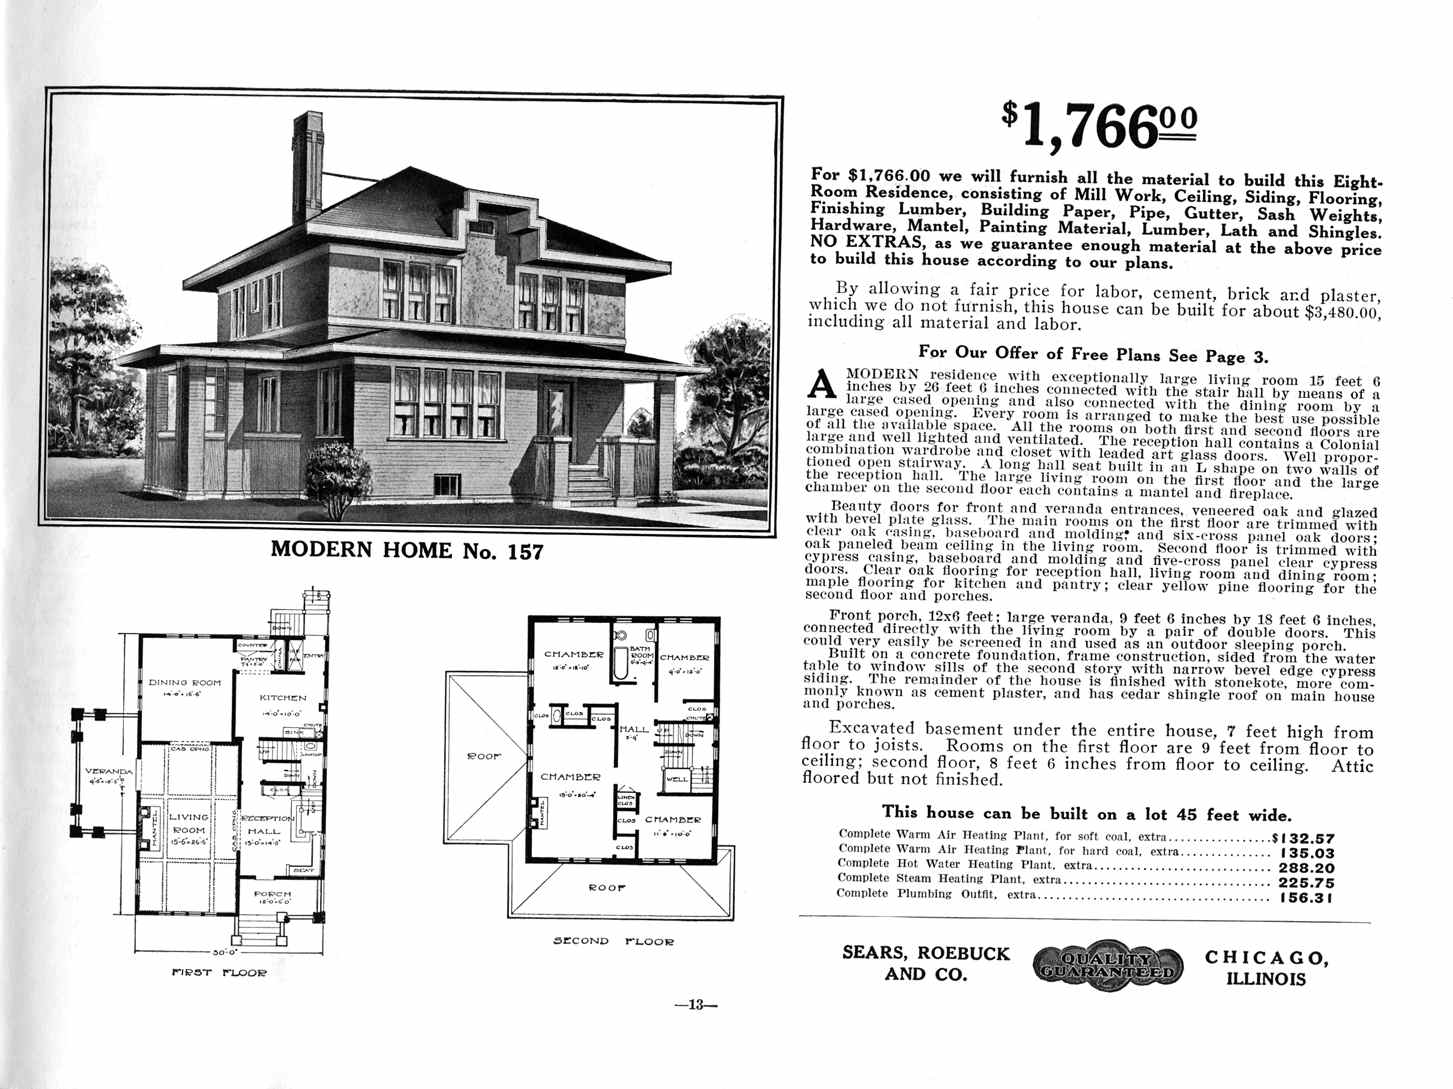 Sears Kit Home Designs Staircase on sears bungalow style homes, sears and roebuck history timeline, sears craftsman homes, sears home shopping, porch roof kits for homes, sears built homes, sears toys, sears barns kits, early-1900s sears homes, sears whitehall, sears steel homes, greenhouse additions to homes, old sears homes, sears roebuck catalog 1920, sears home improvement, sears homes floor plans, sears homes 1928 era, honor bilt homes, sears home catalog, sears and roebuck homes,